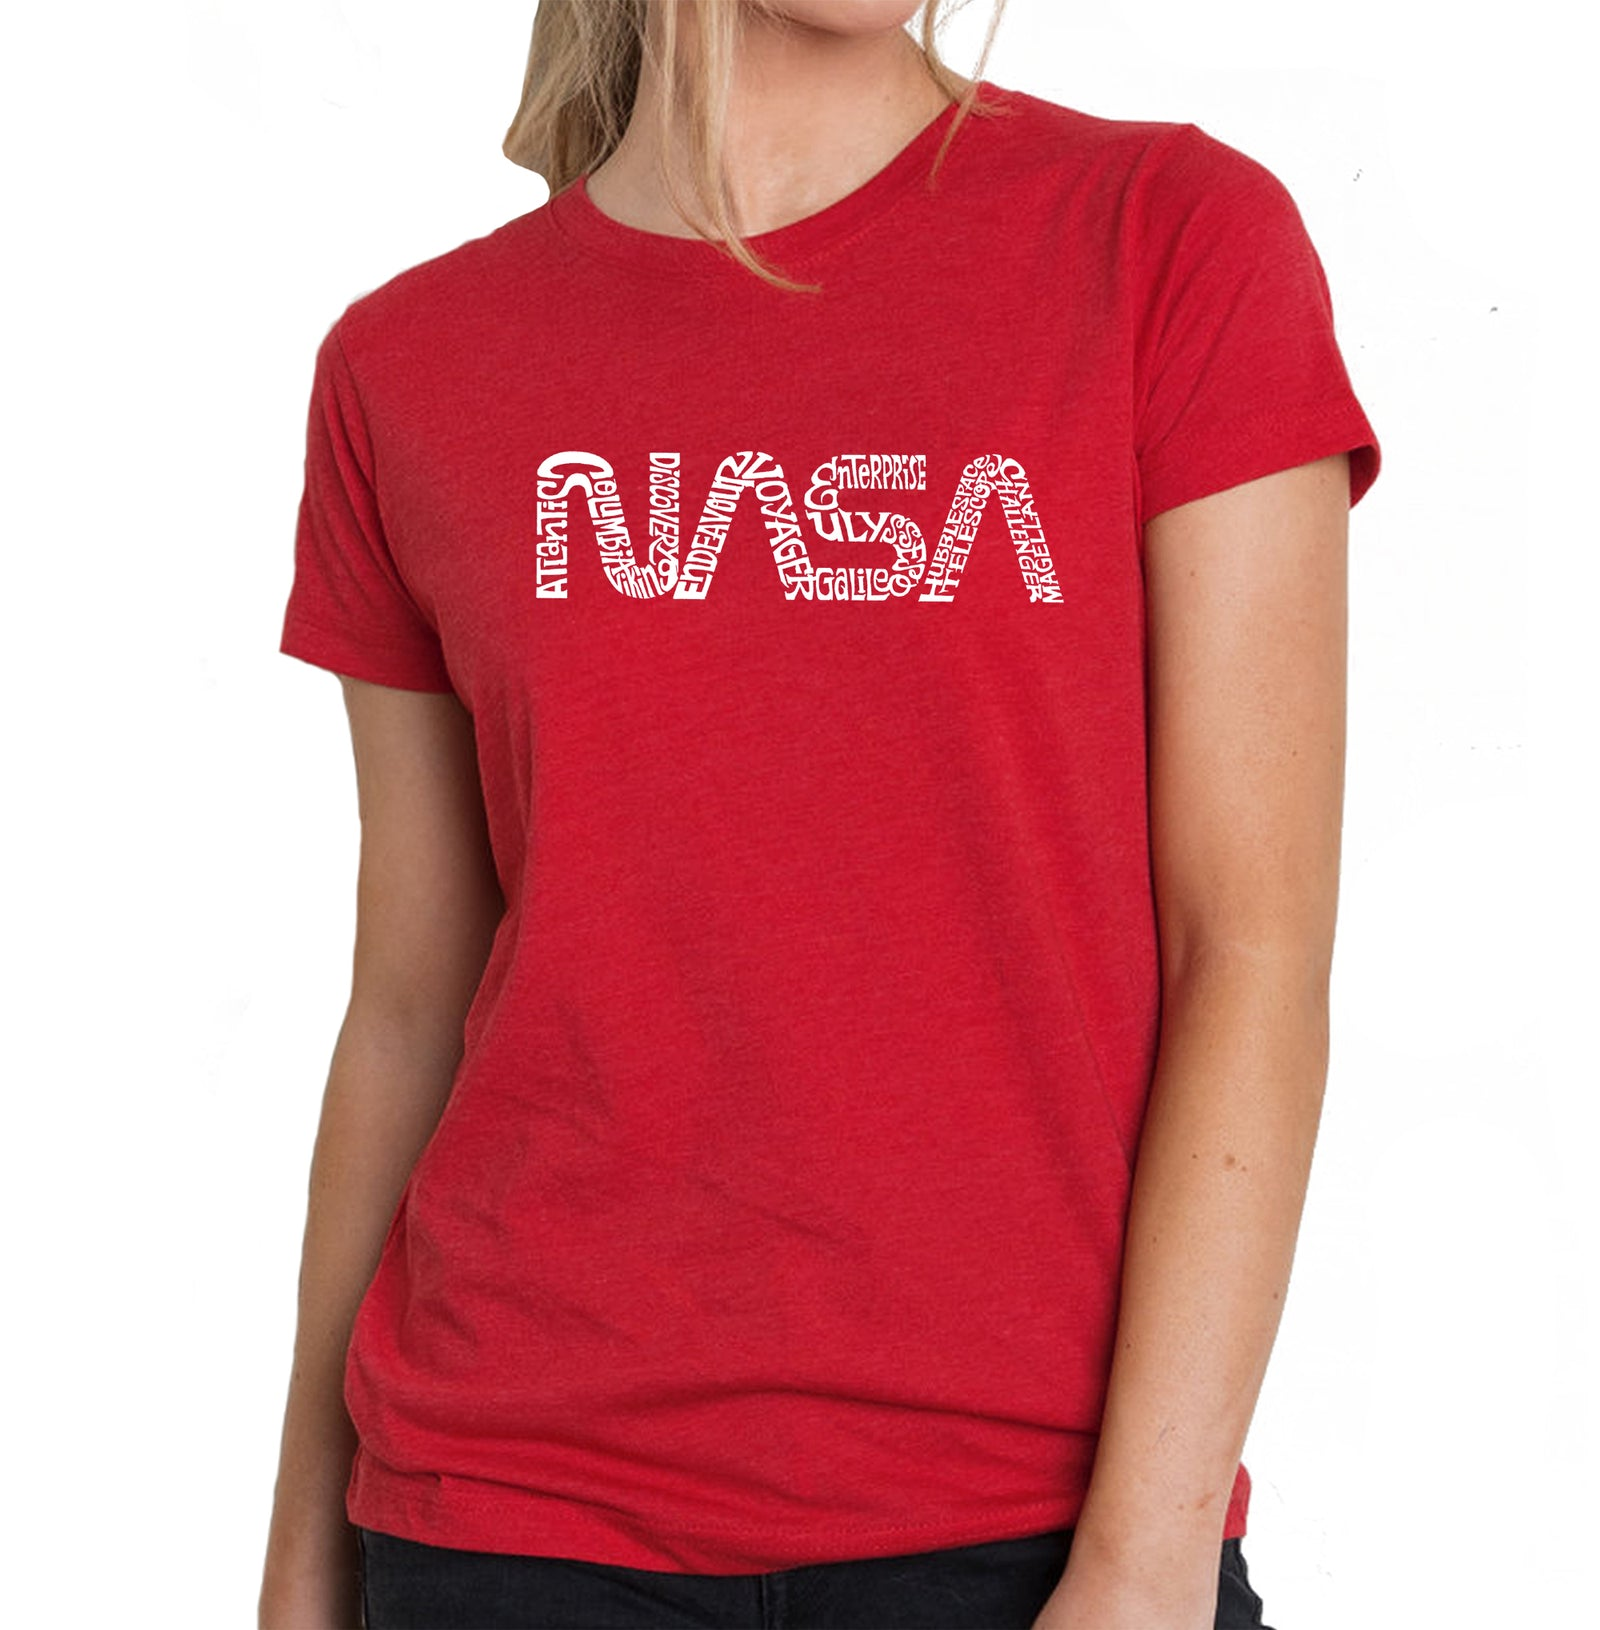 Women's Premium Blend Word Art T-shirt - Worm Nasa